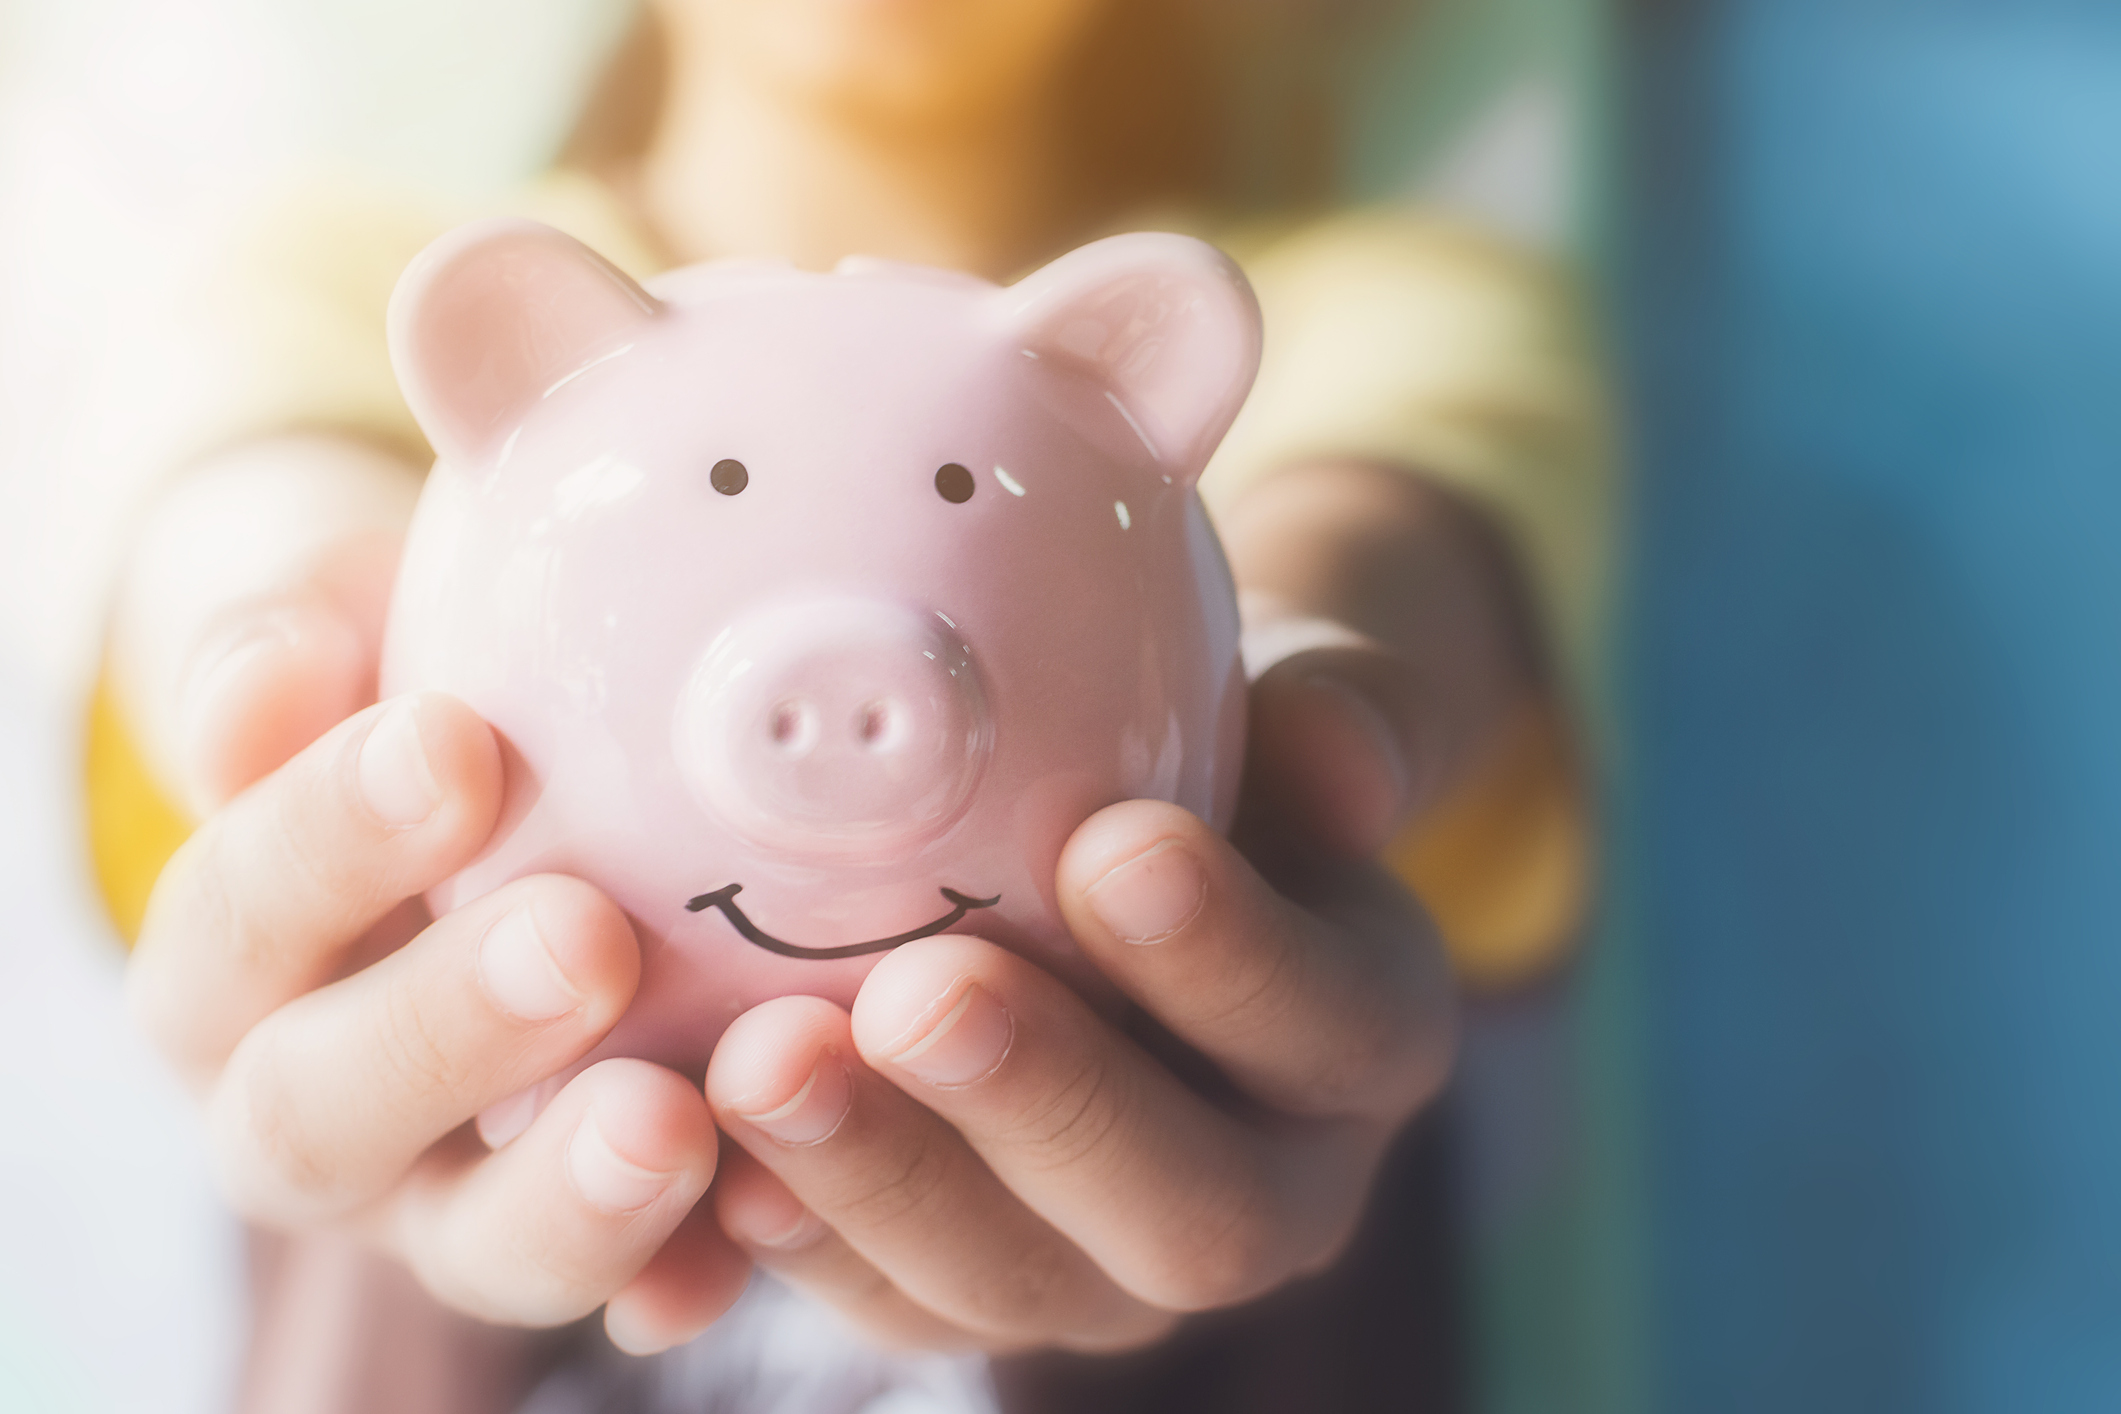 Woman holding a light pink piggy bank in the palms of her hands. Being prepared to discuss your desired salary can pay off!